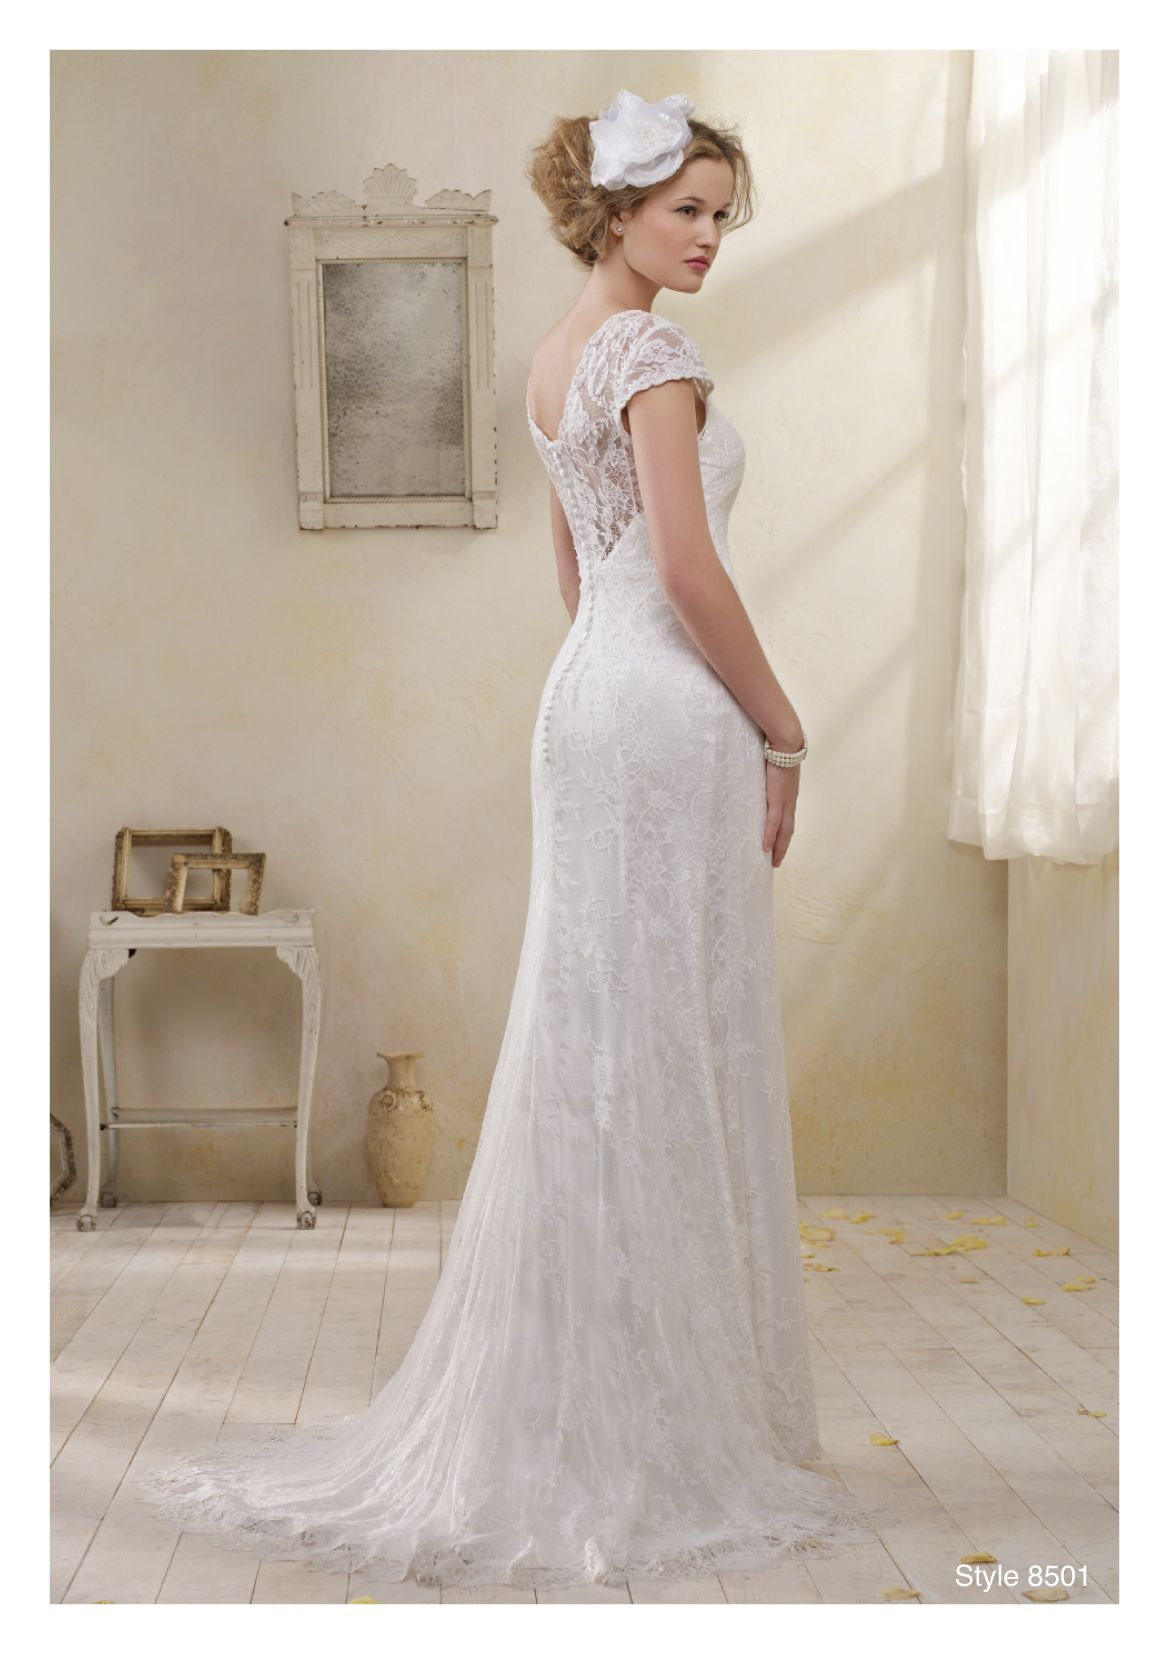 Bias cut satin wedding dress with lace over vintage wedding bias cut satin wedding dress with lace over ombrellifo Choice Image